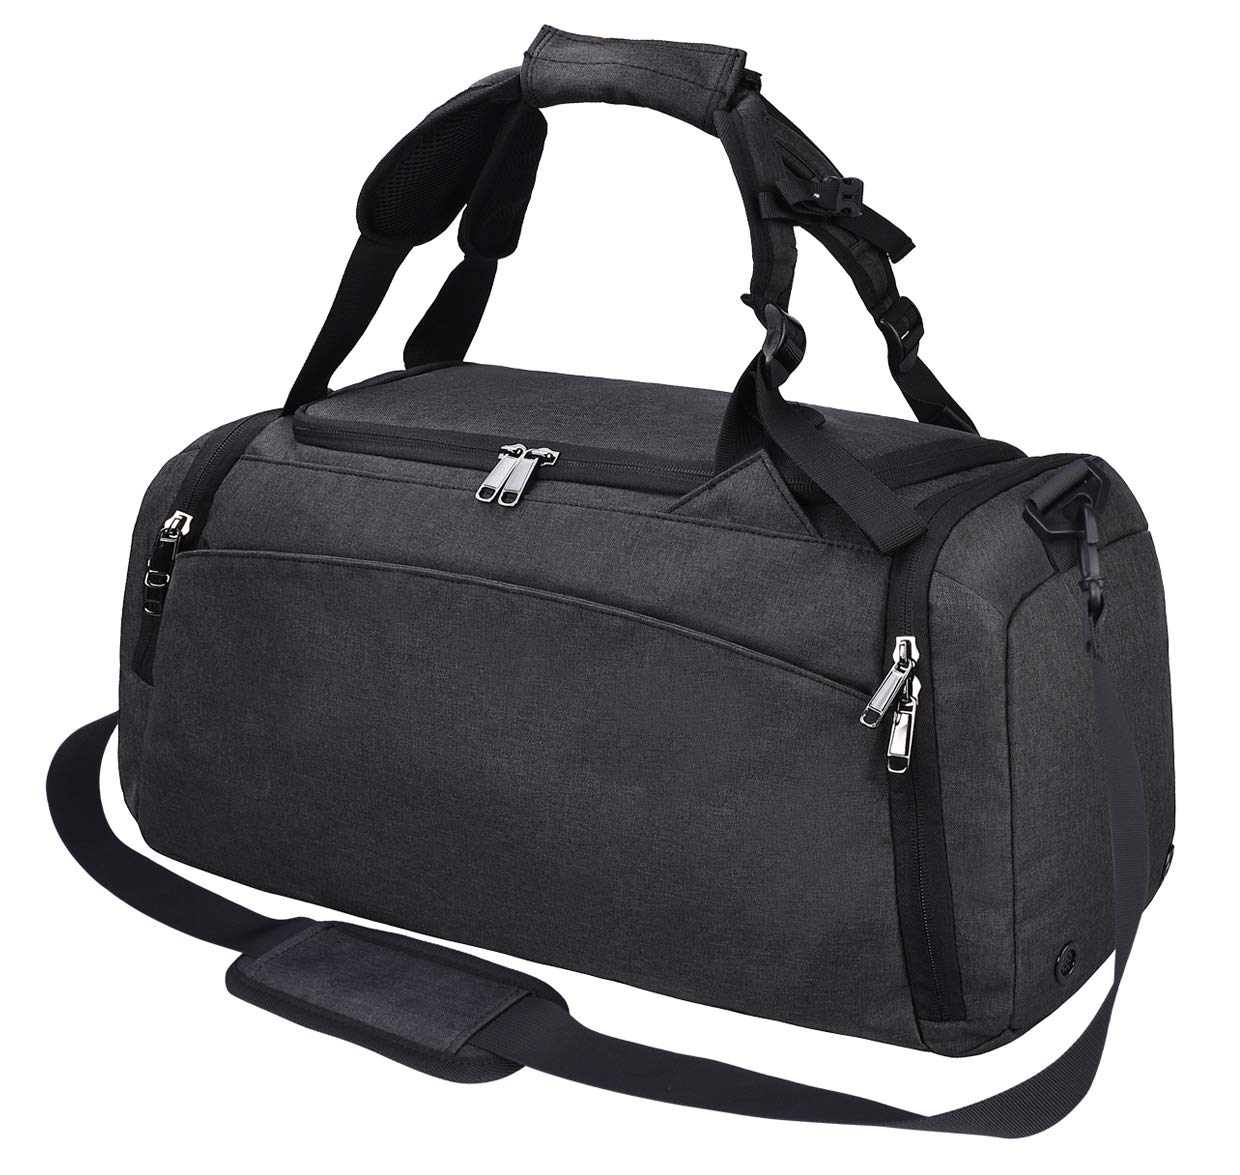 Gym Duffle Bag Waterproof Travel Weekender Bag for Men Women Duffel Bag Backpack with Shoes Compartment Overnight Bag 40L Black by NEWHEY